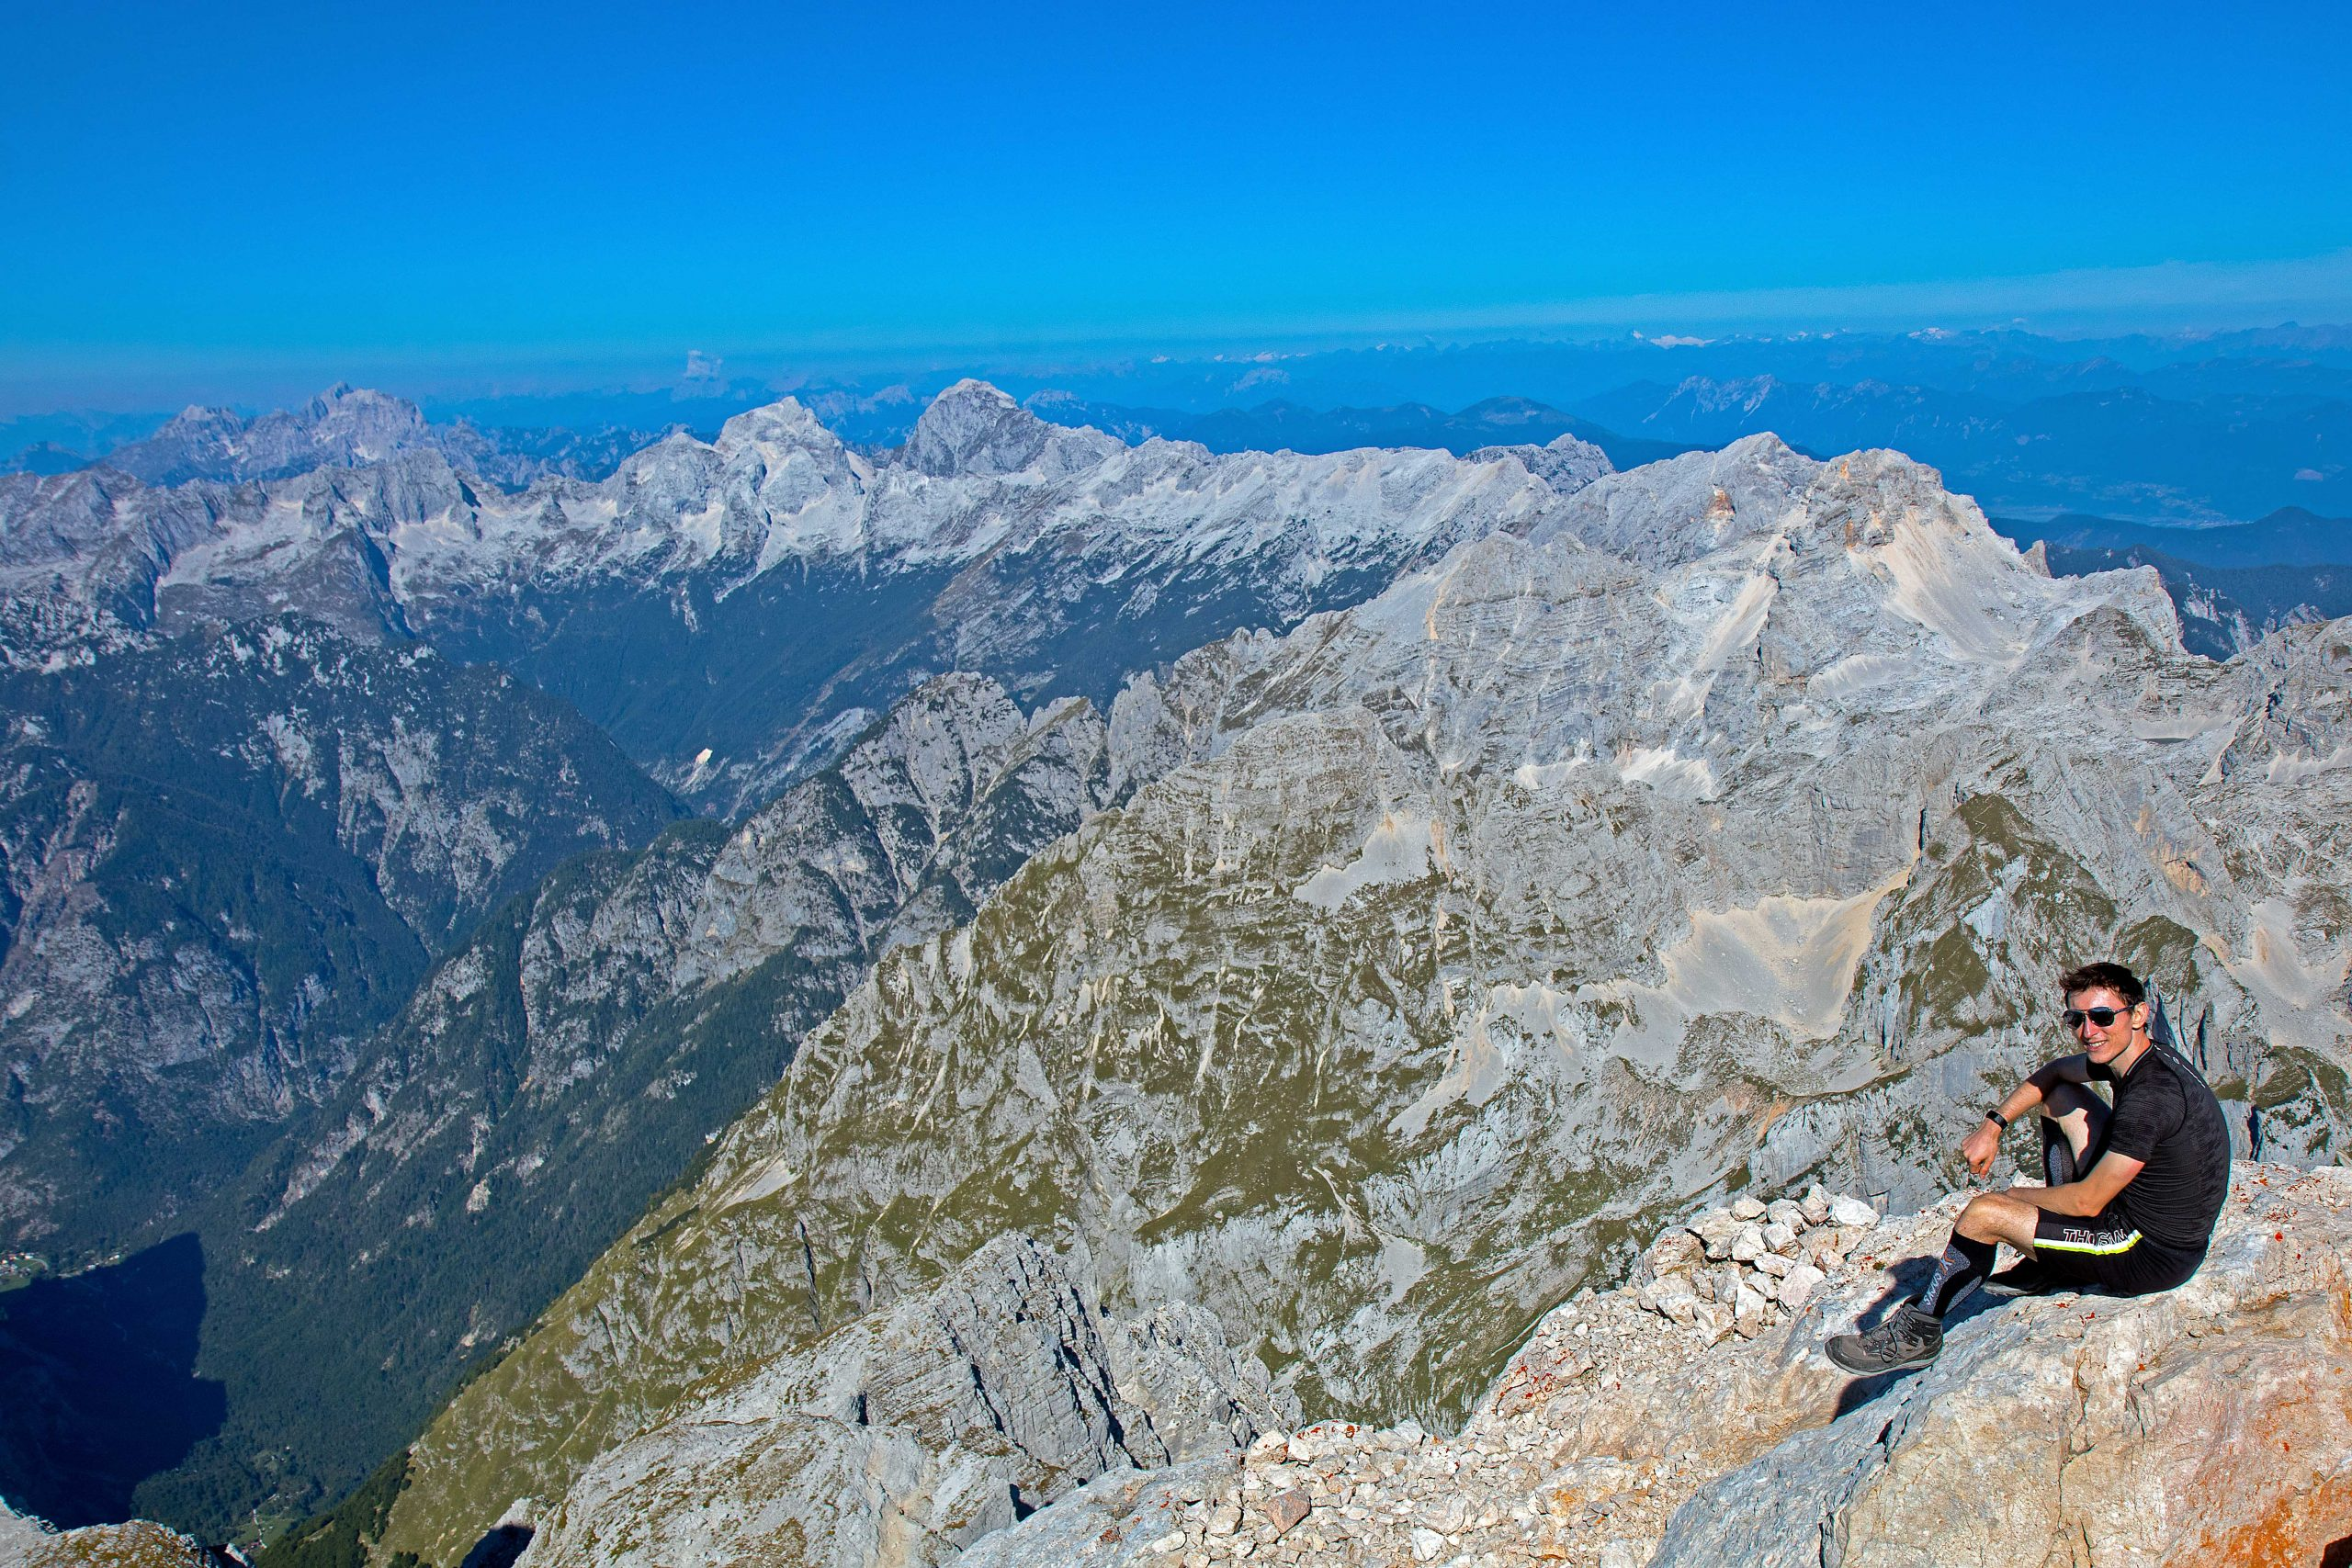 Views over the Italian/Austrian alpes